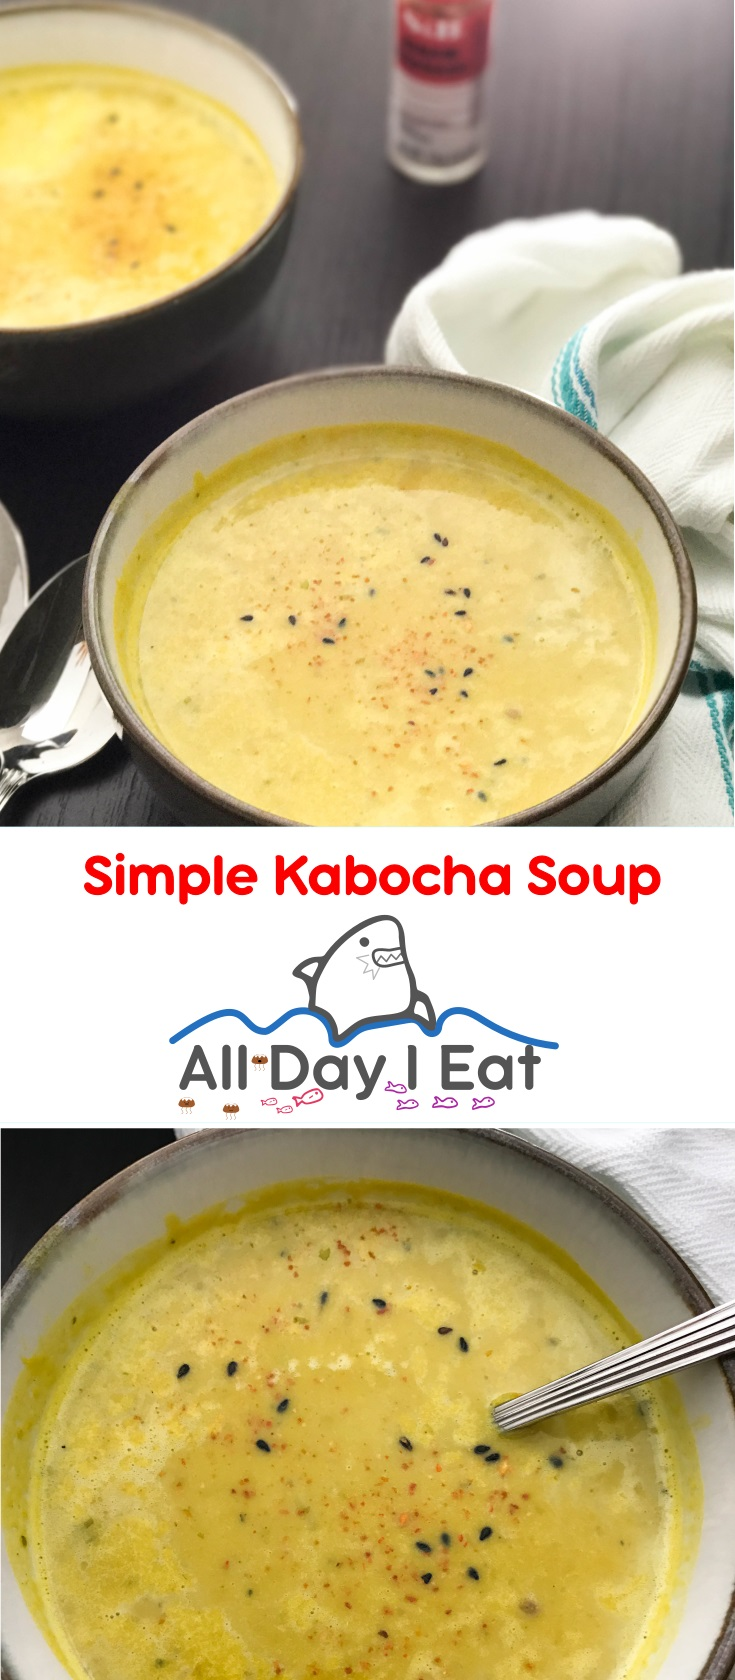 Simple Kabocha (Japanese pumpkin) Soup | www.alldayieat.com